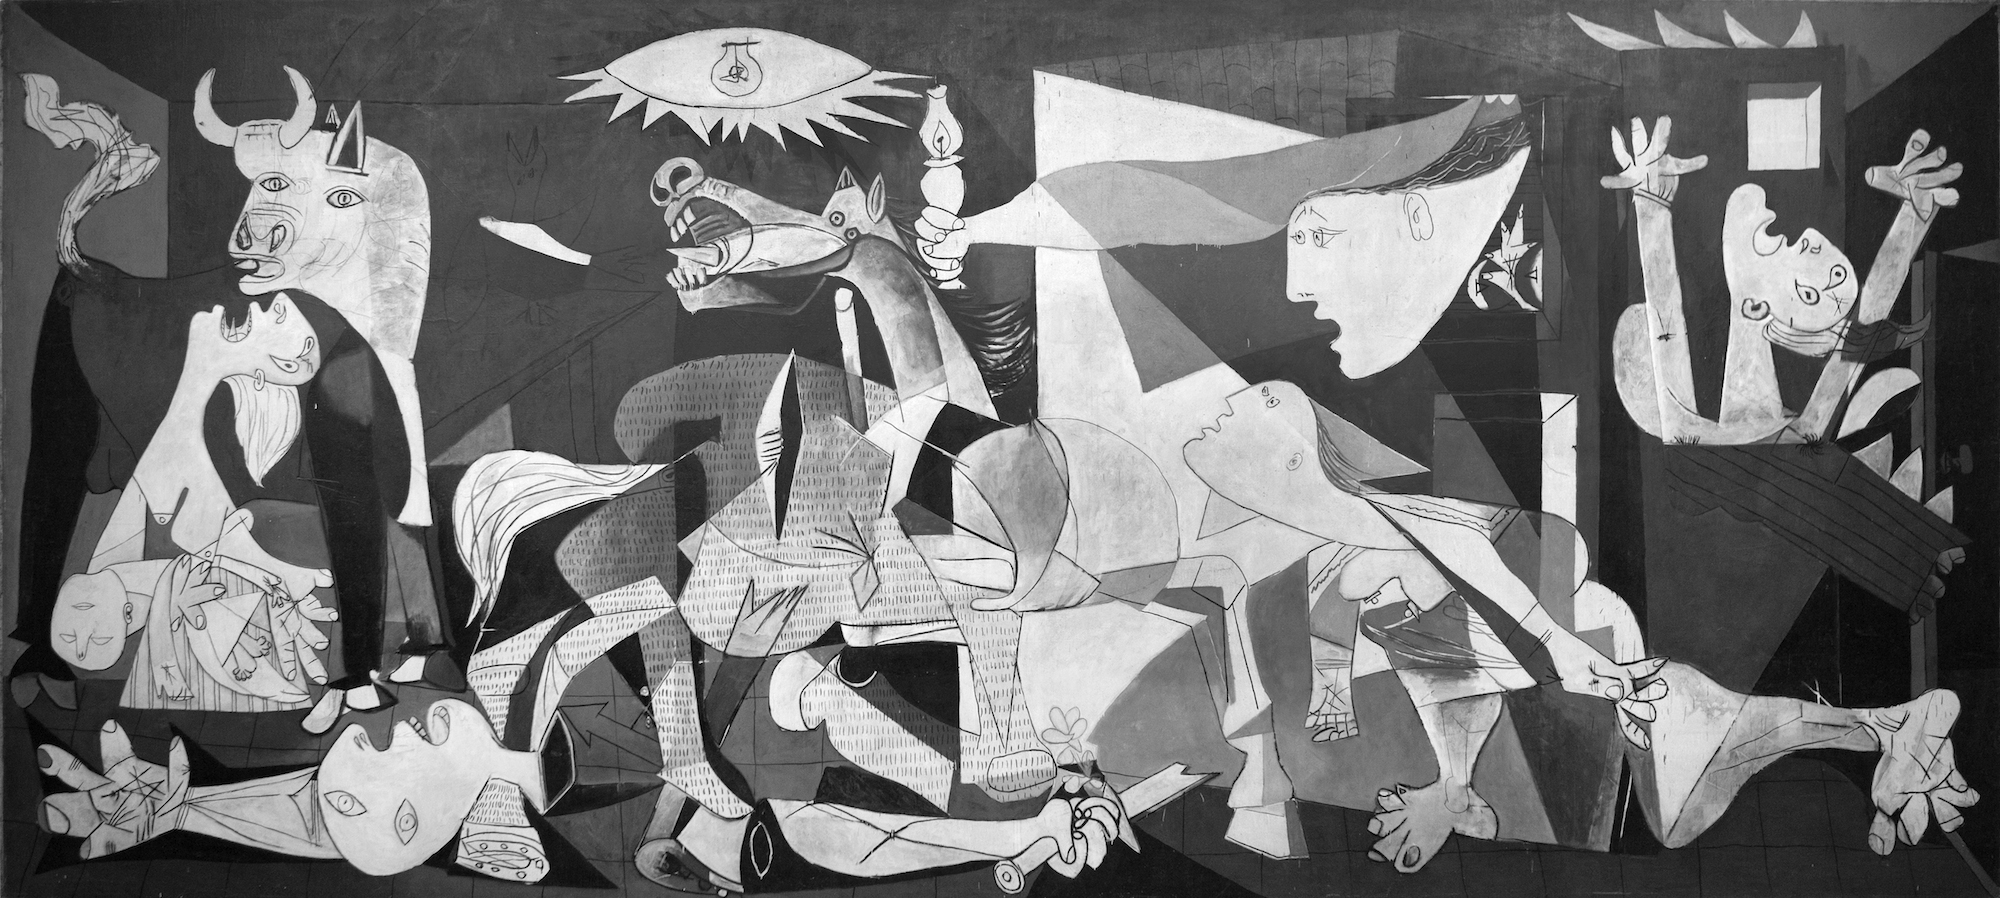 Exhibitions in Paris in March, include a new show at the Picasso Museum, where you can also see the artist's famous 'Guernica' painting.